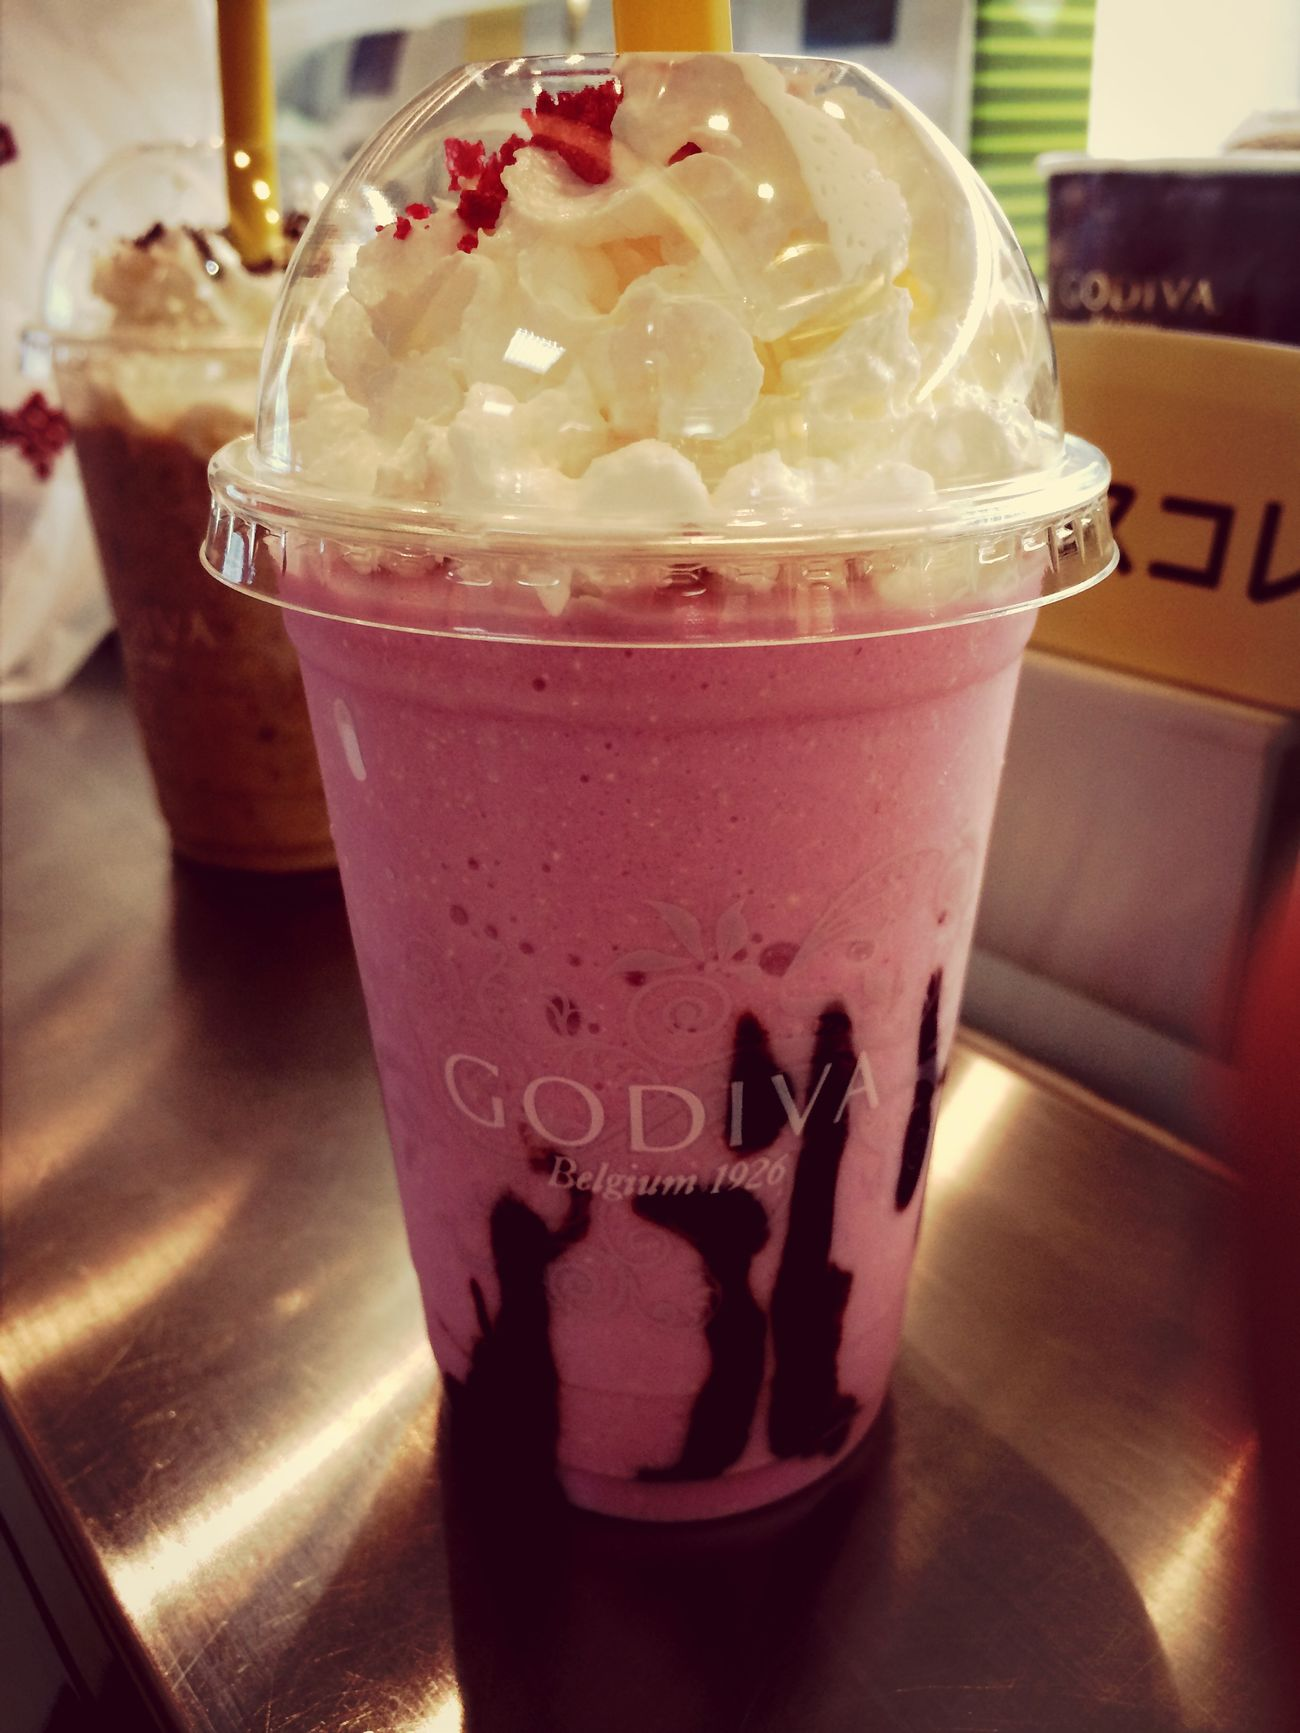 Godiva Raspberry Ice Blended